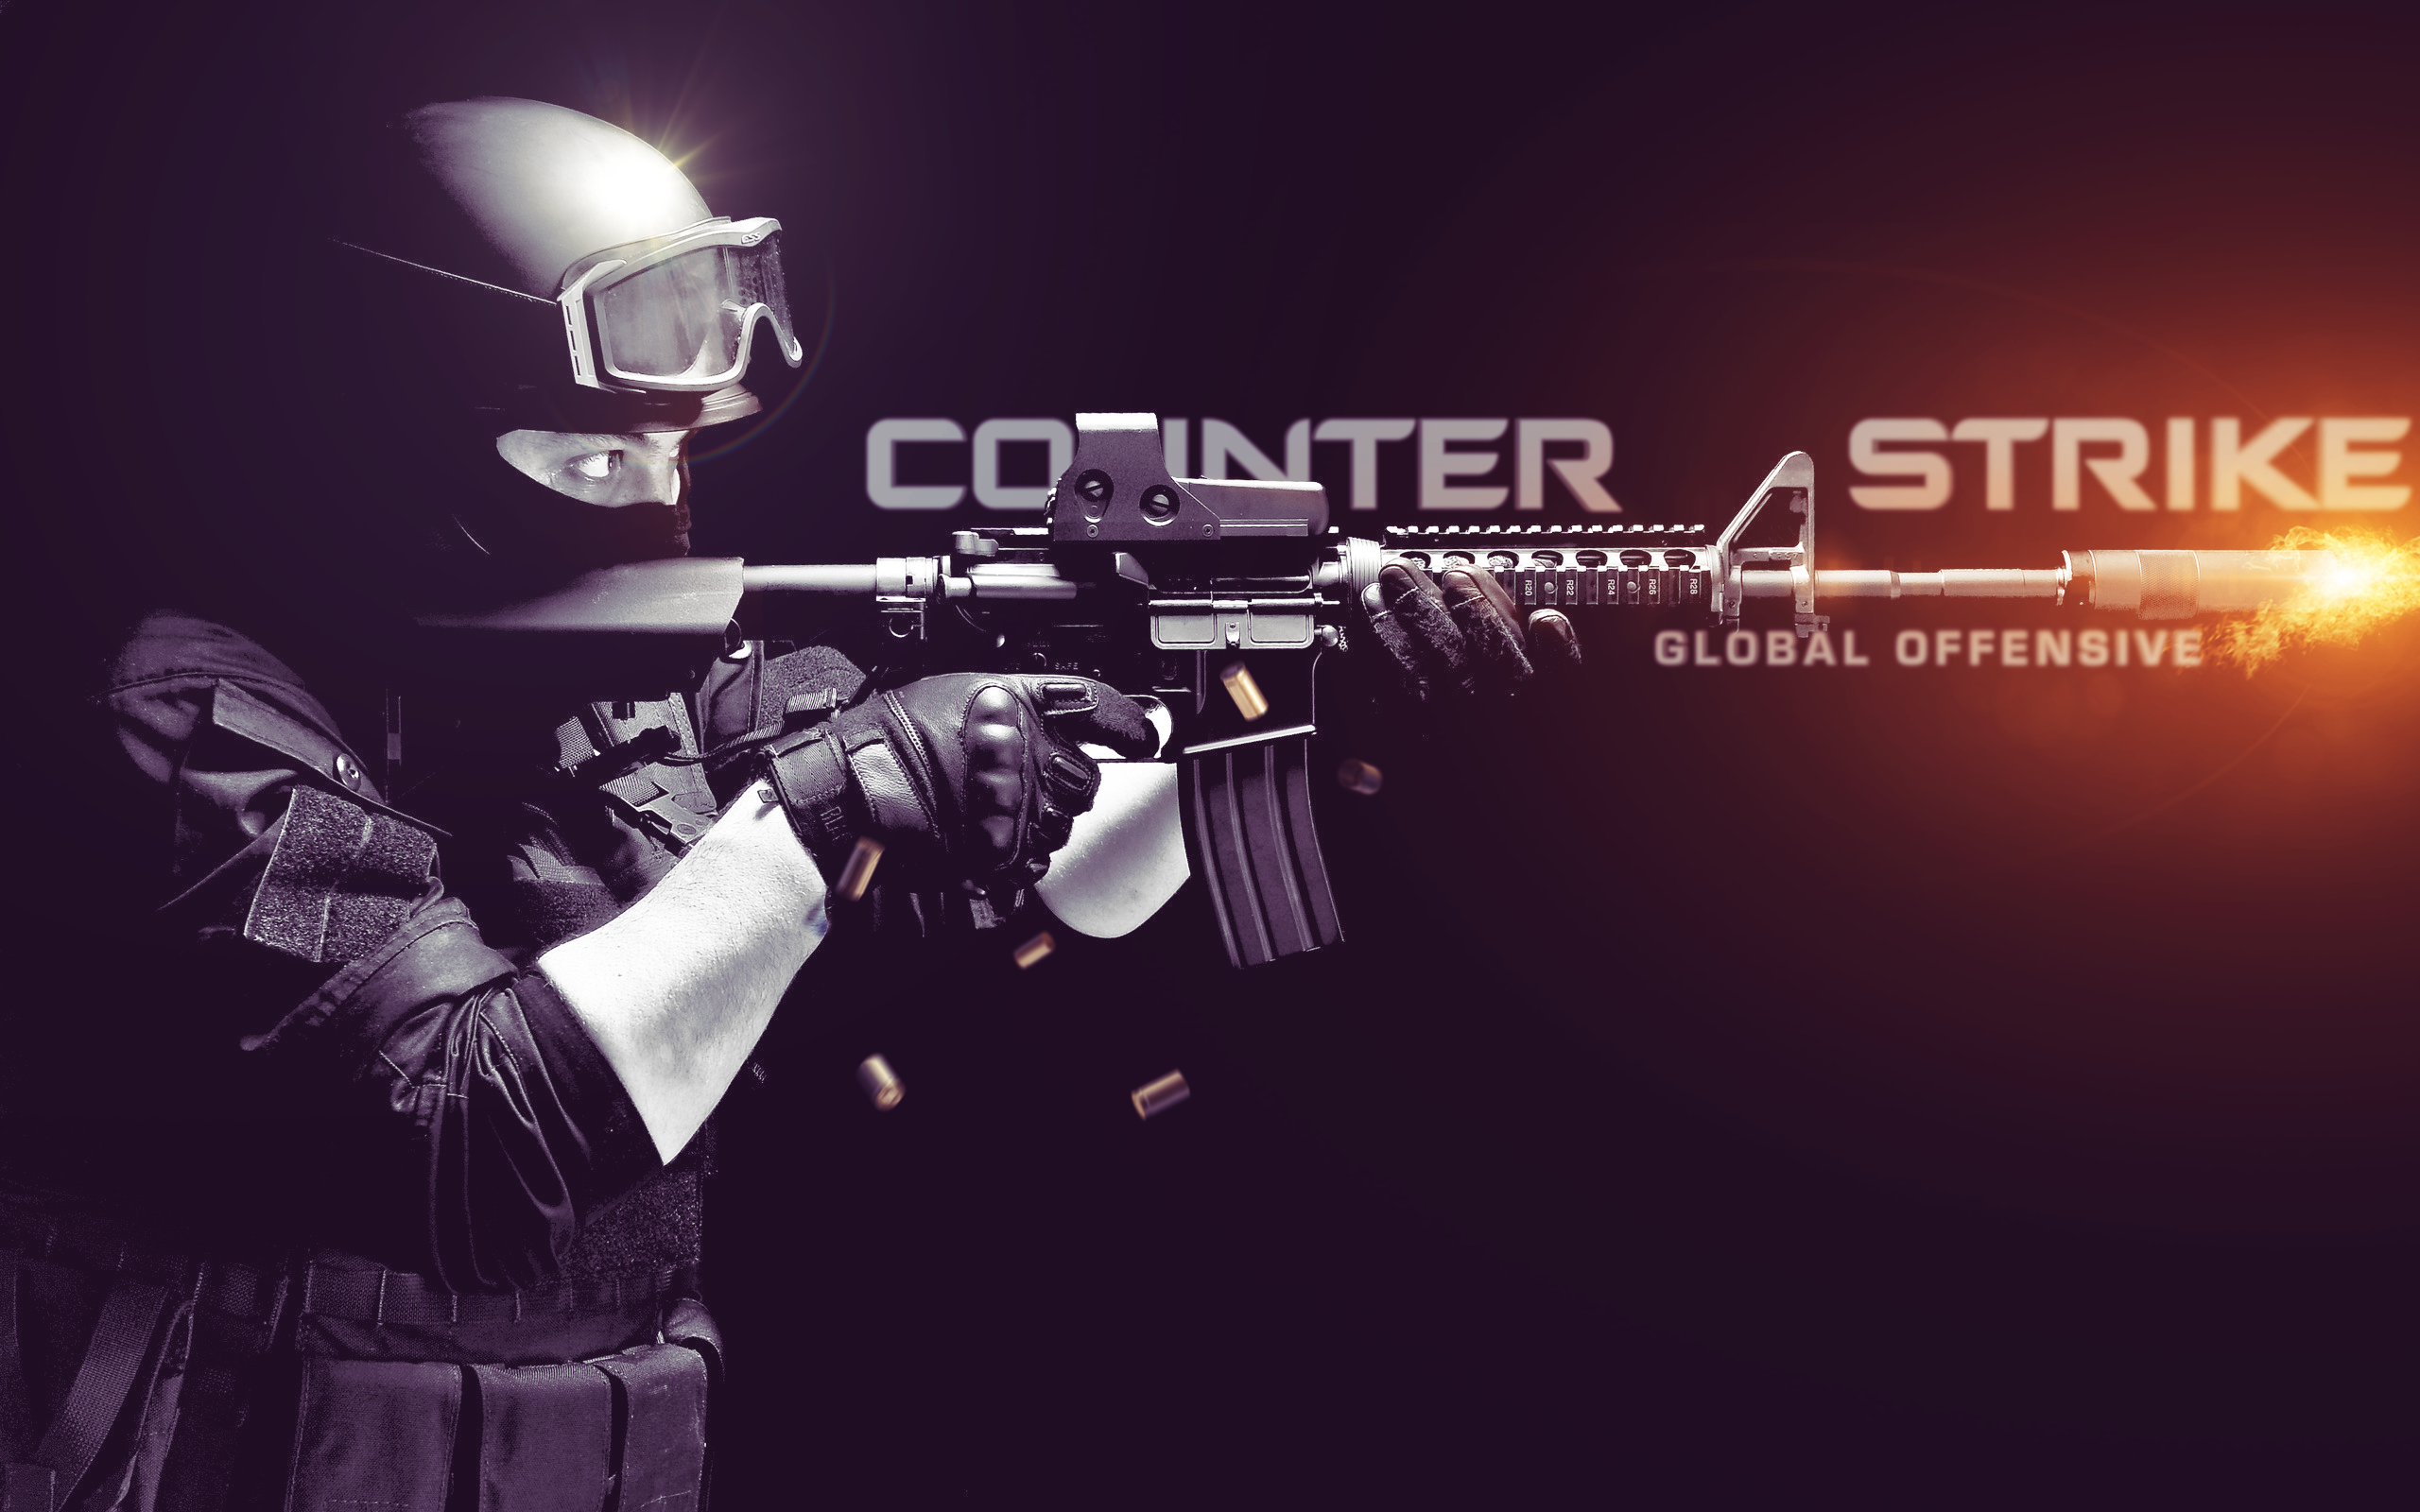 161 counter strike global offensive hd wallpapers background hd wallpaper background image id587593 2560x1600 video game counter strike global offensive voltagebd Choice Image